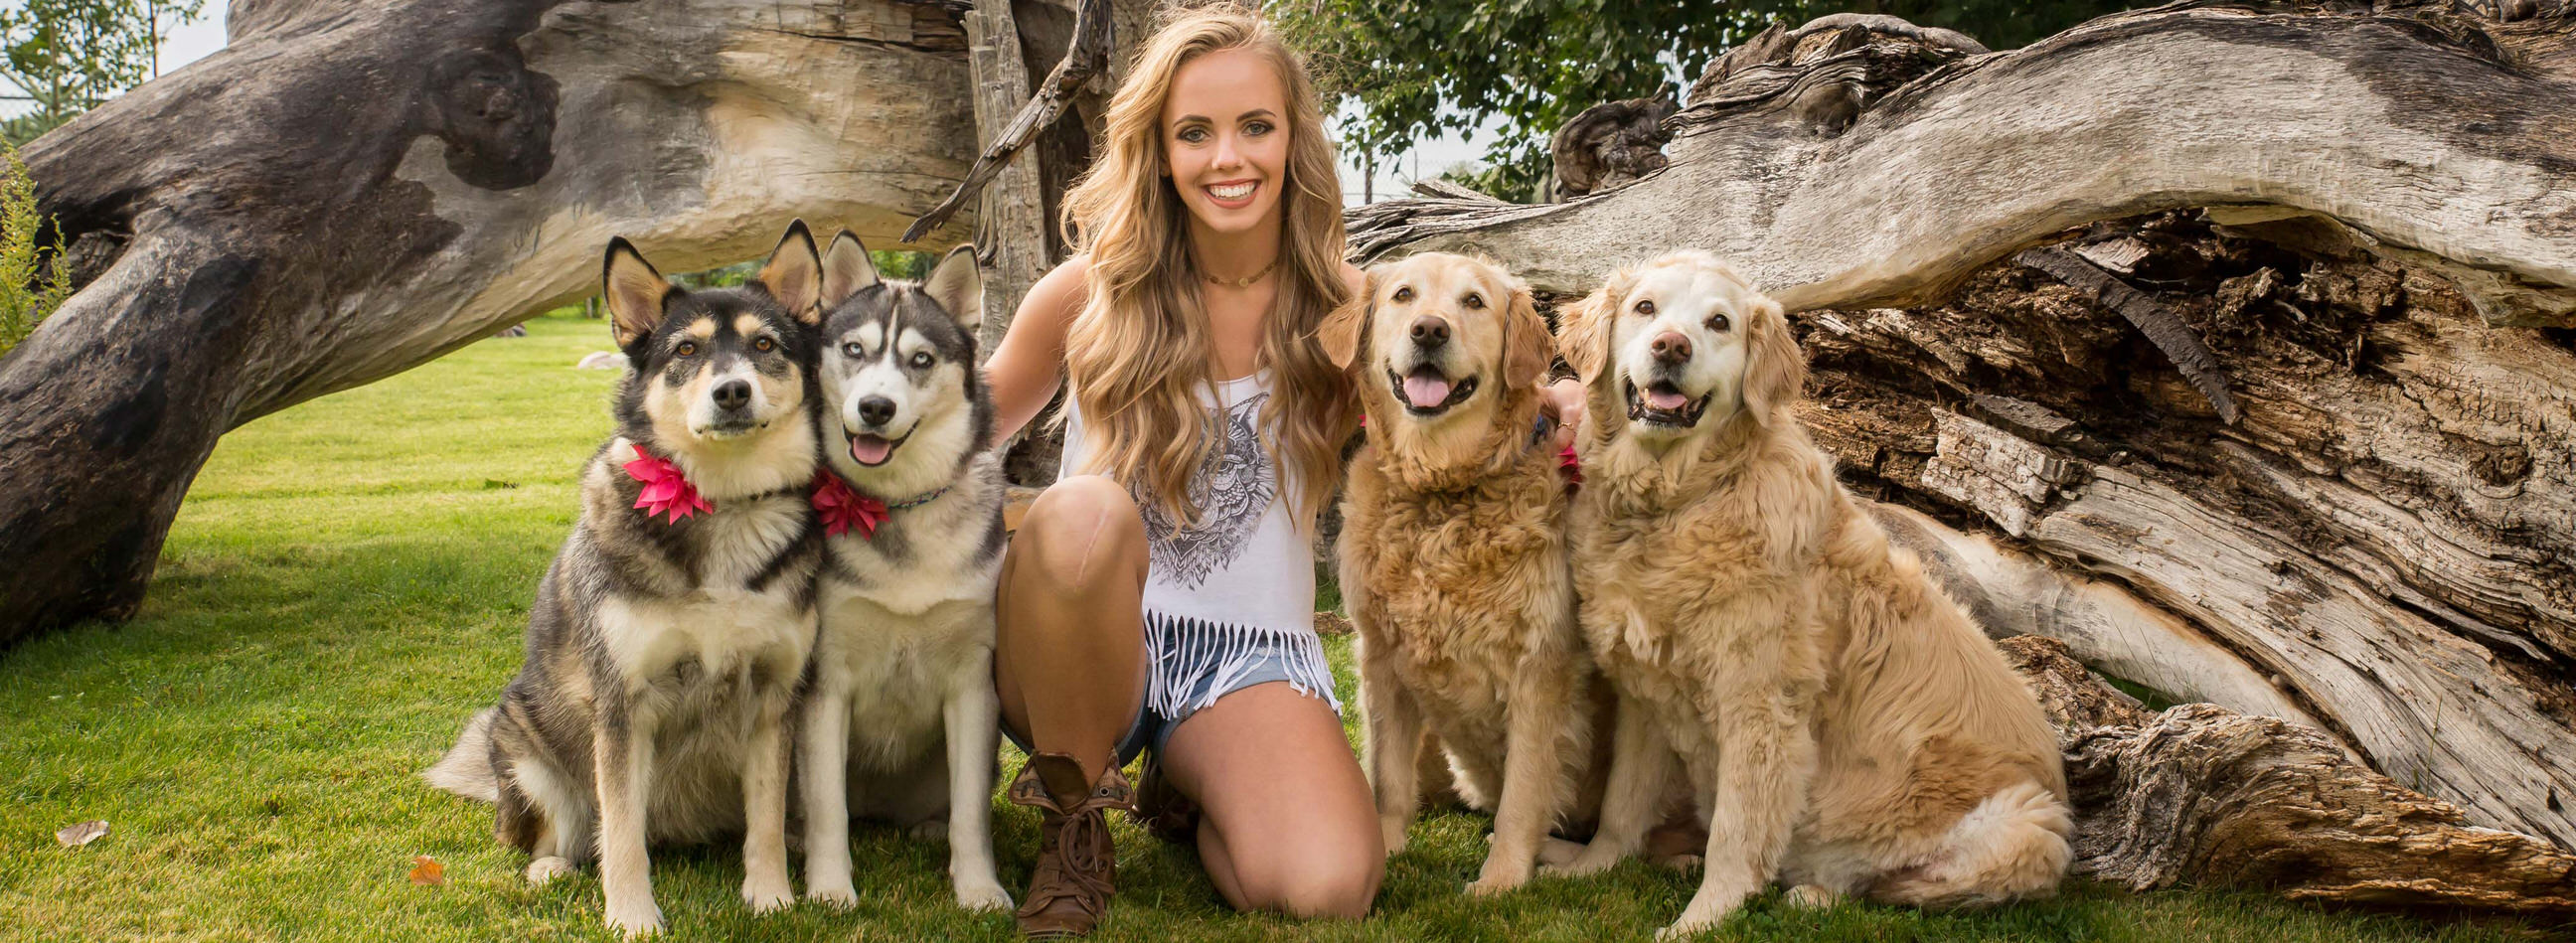 Tayler testimonial, portrait with four dogs